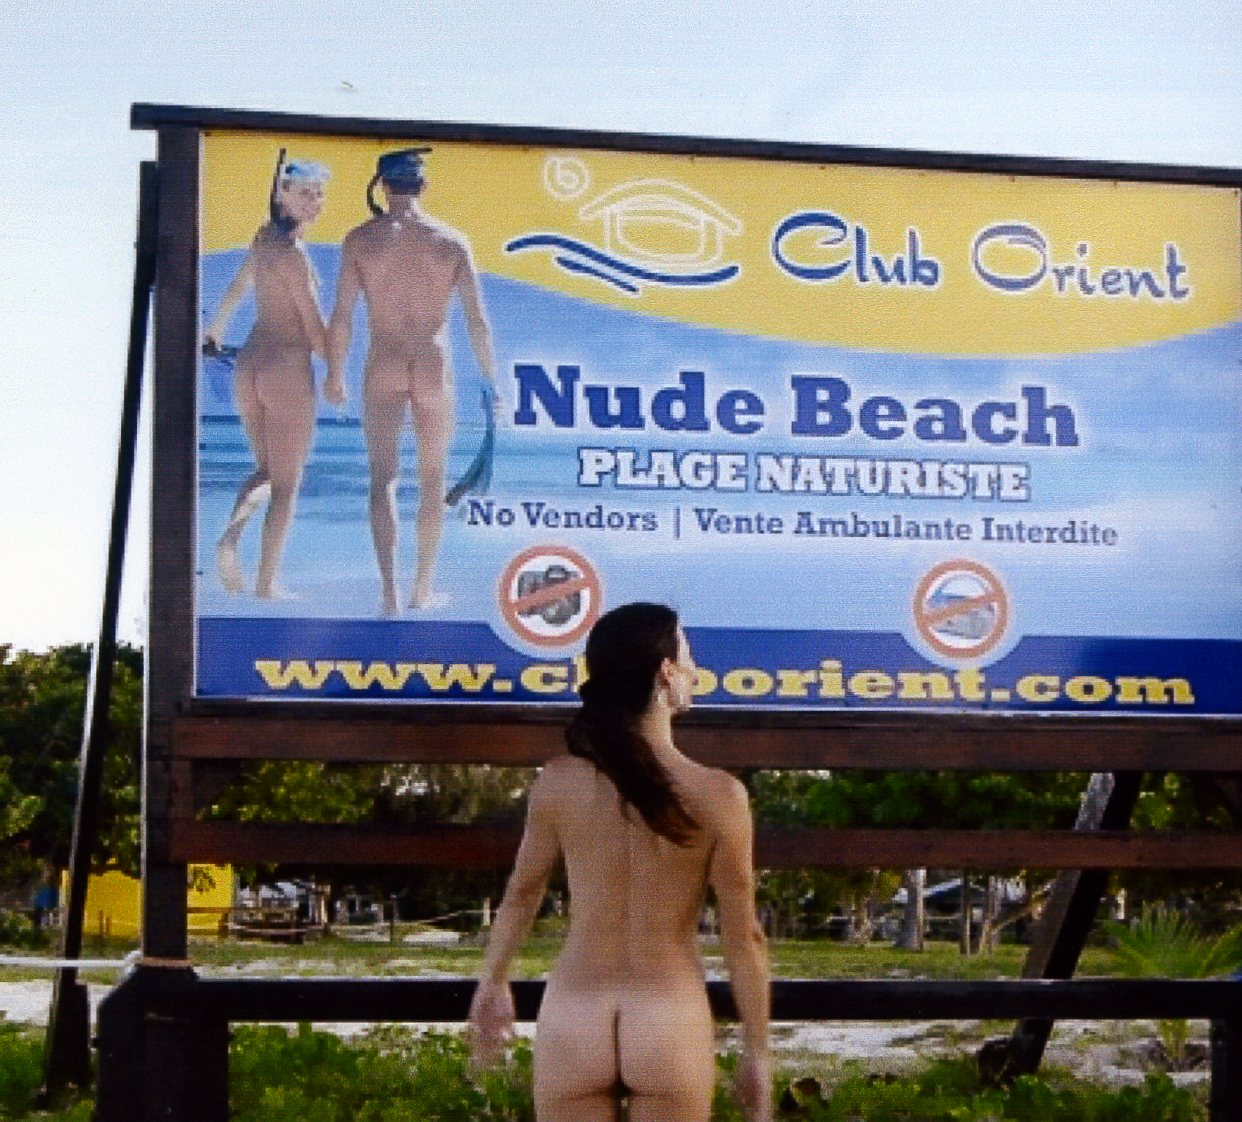 St martin free nude beach pictures seems